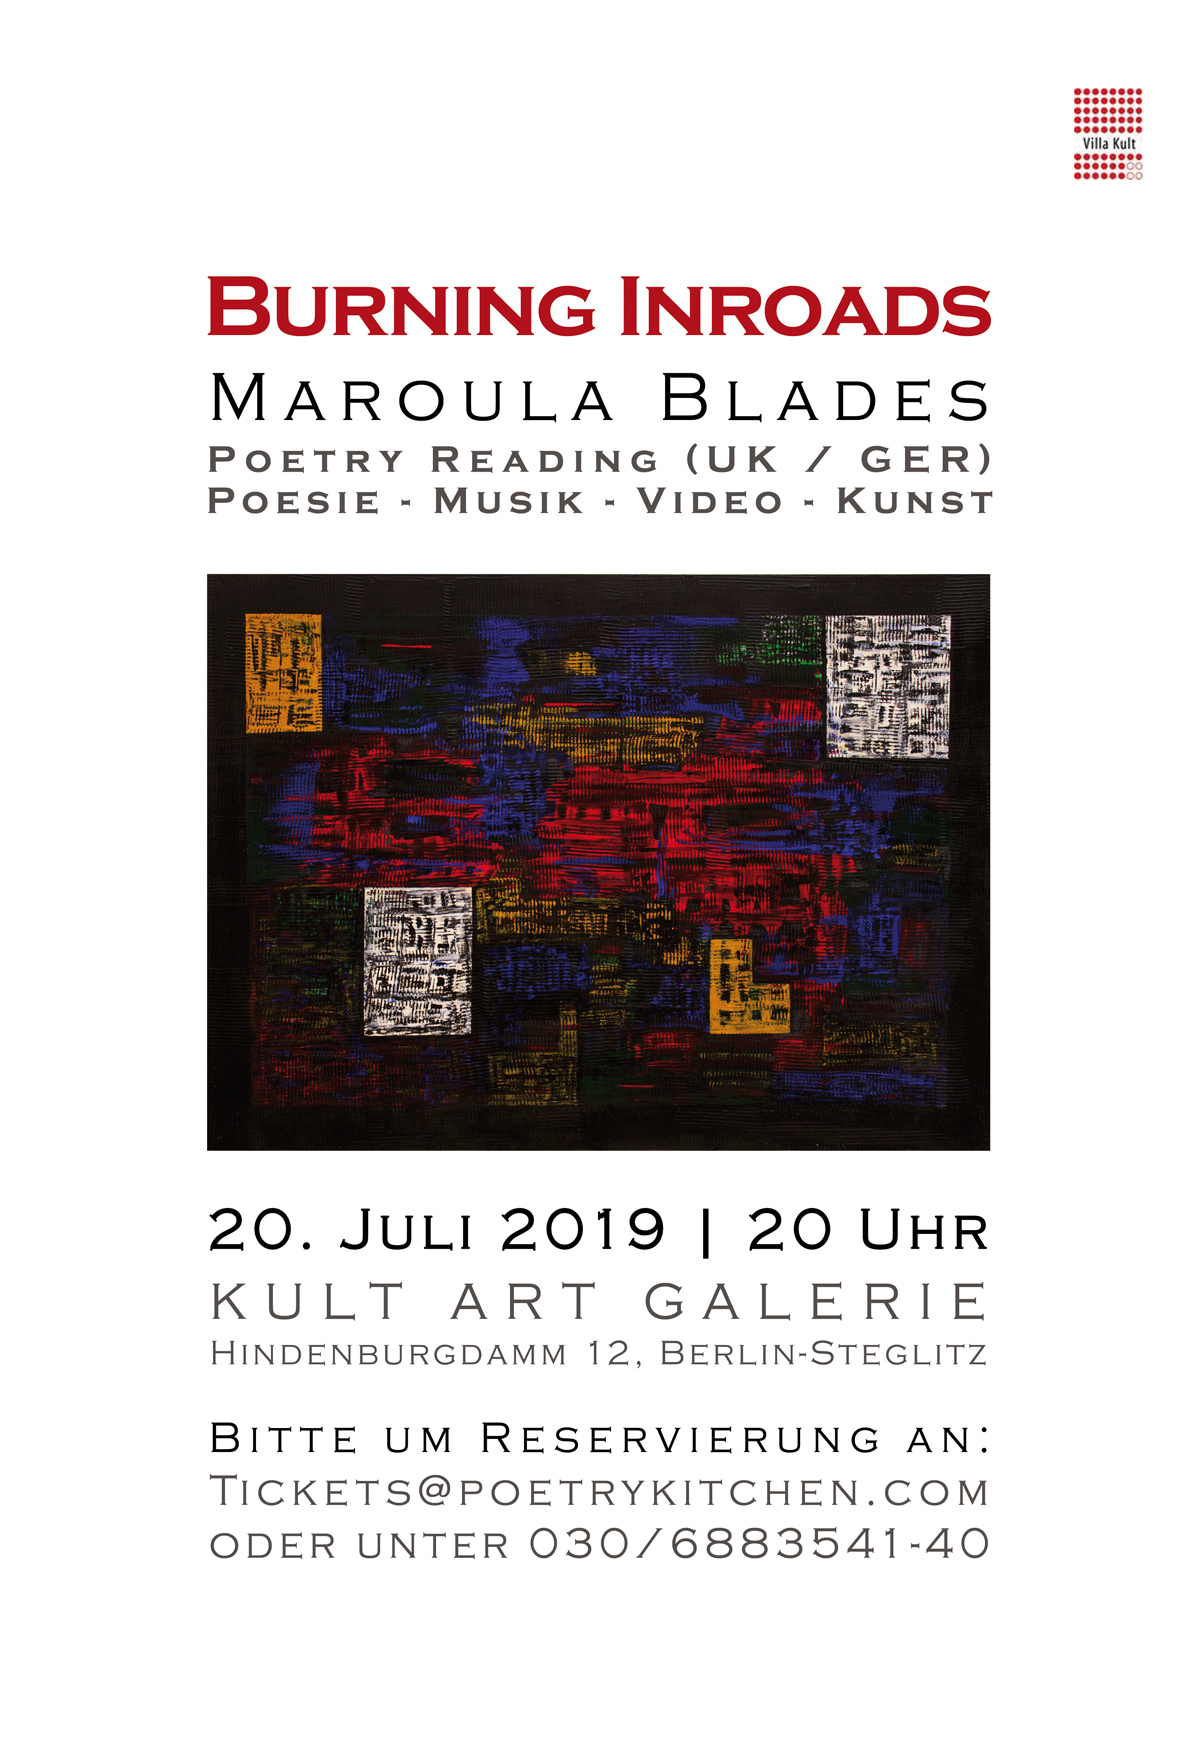 email flyer - Maroula Blades - BURNING INROADS